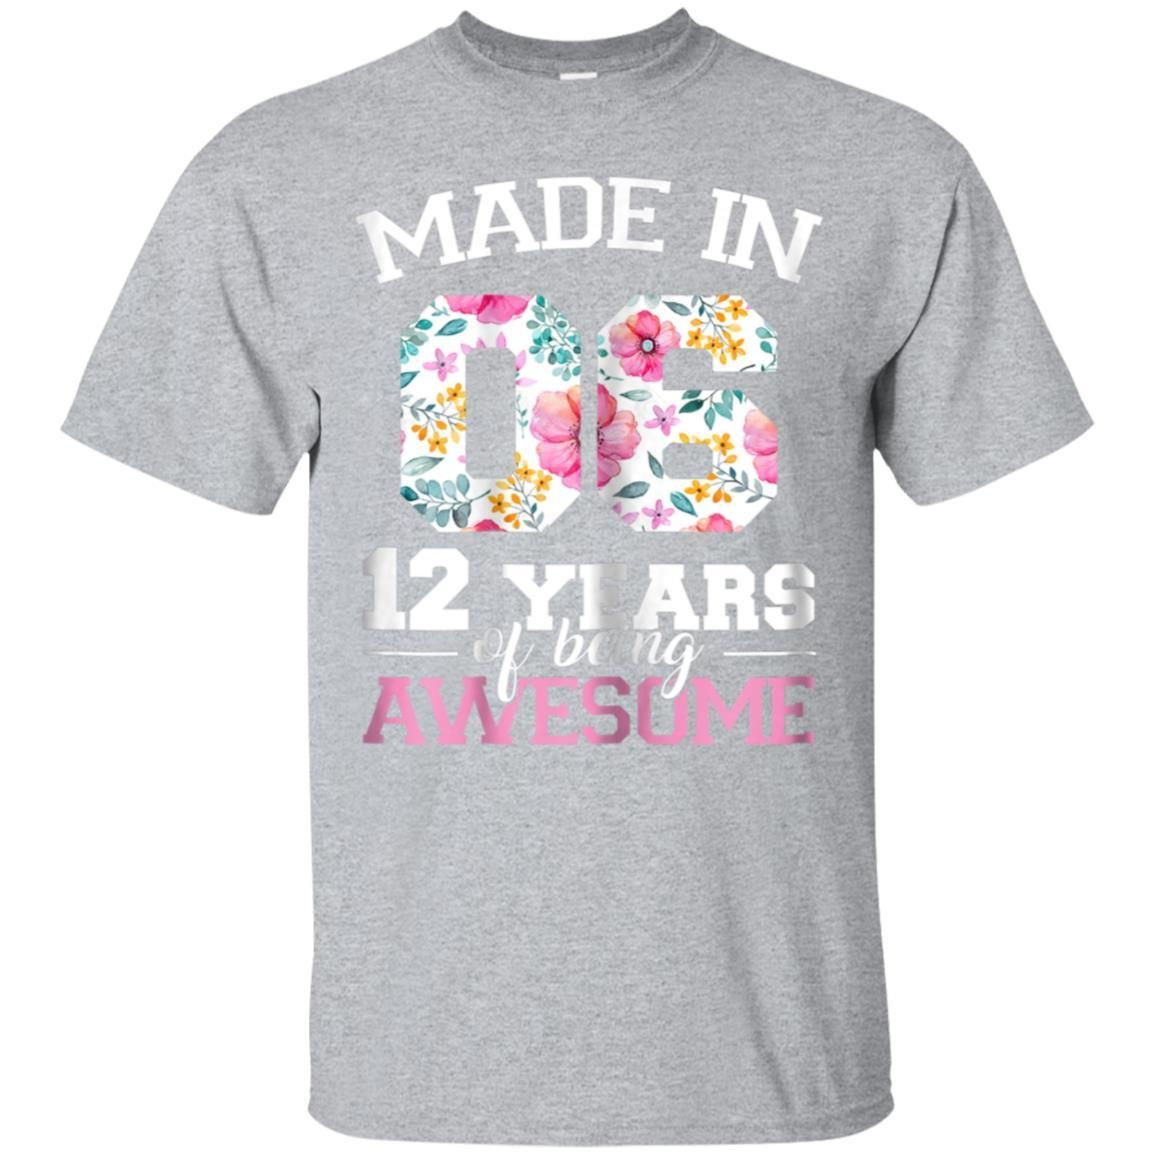 Awesome 12 year old birthday girl shirt born in 2006 12th